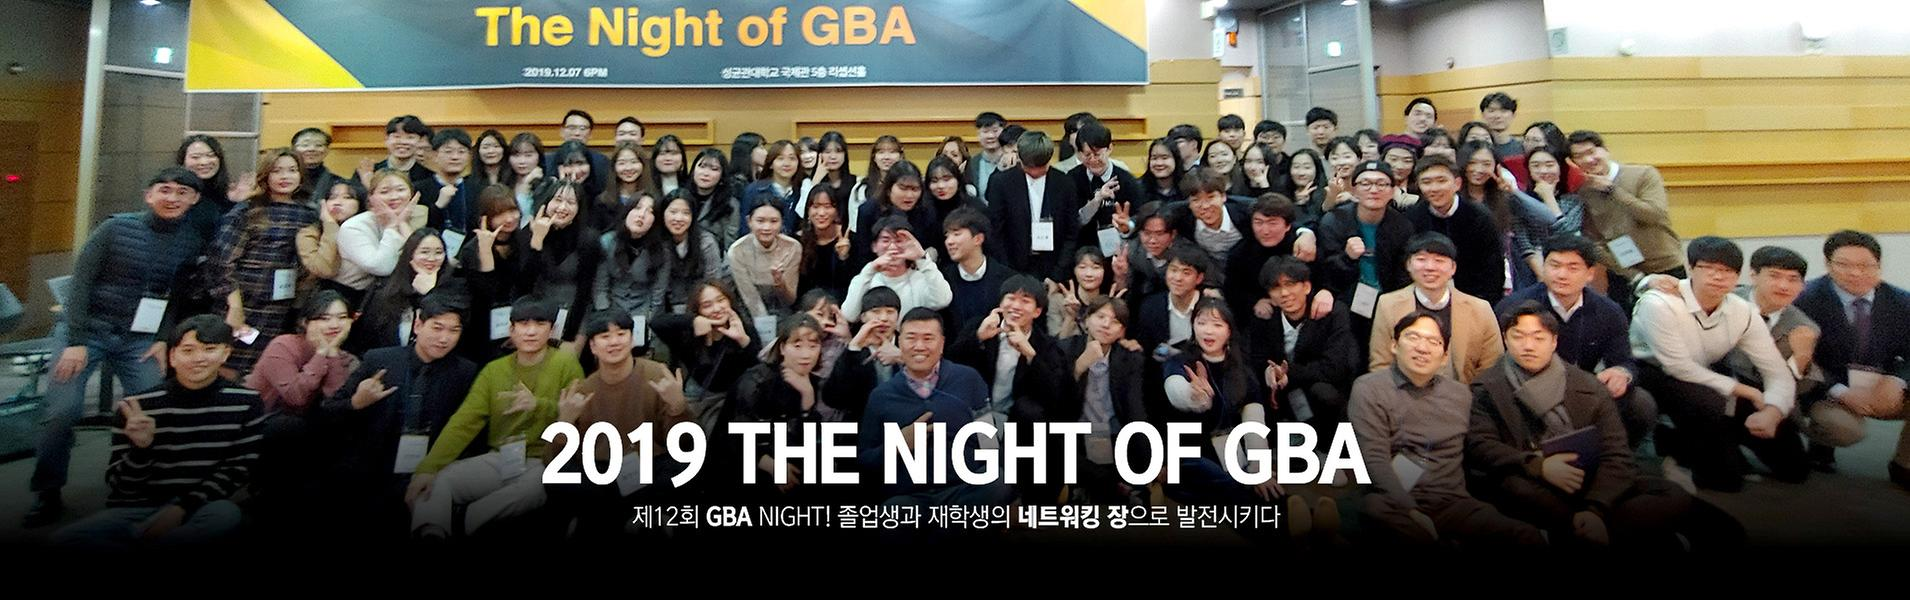 2019 THE NIGHT OF GBA